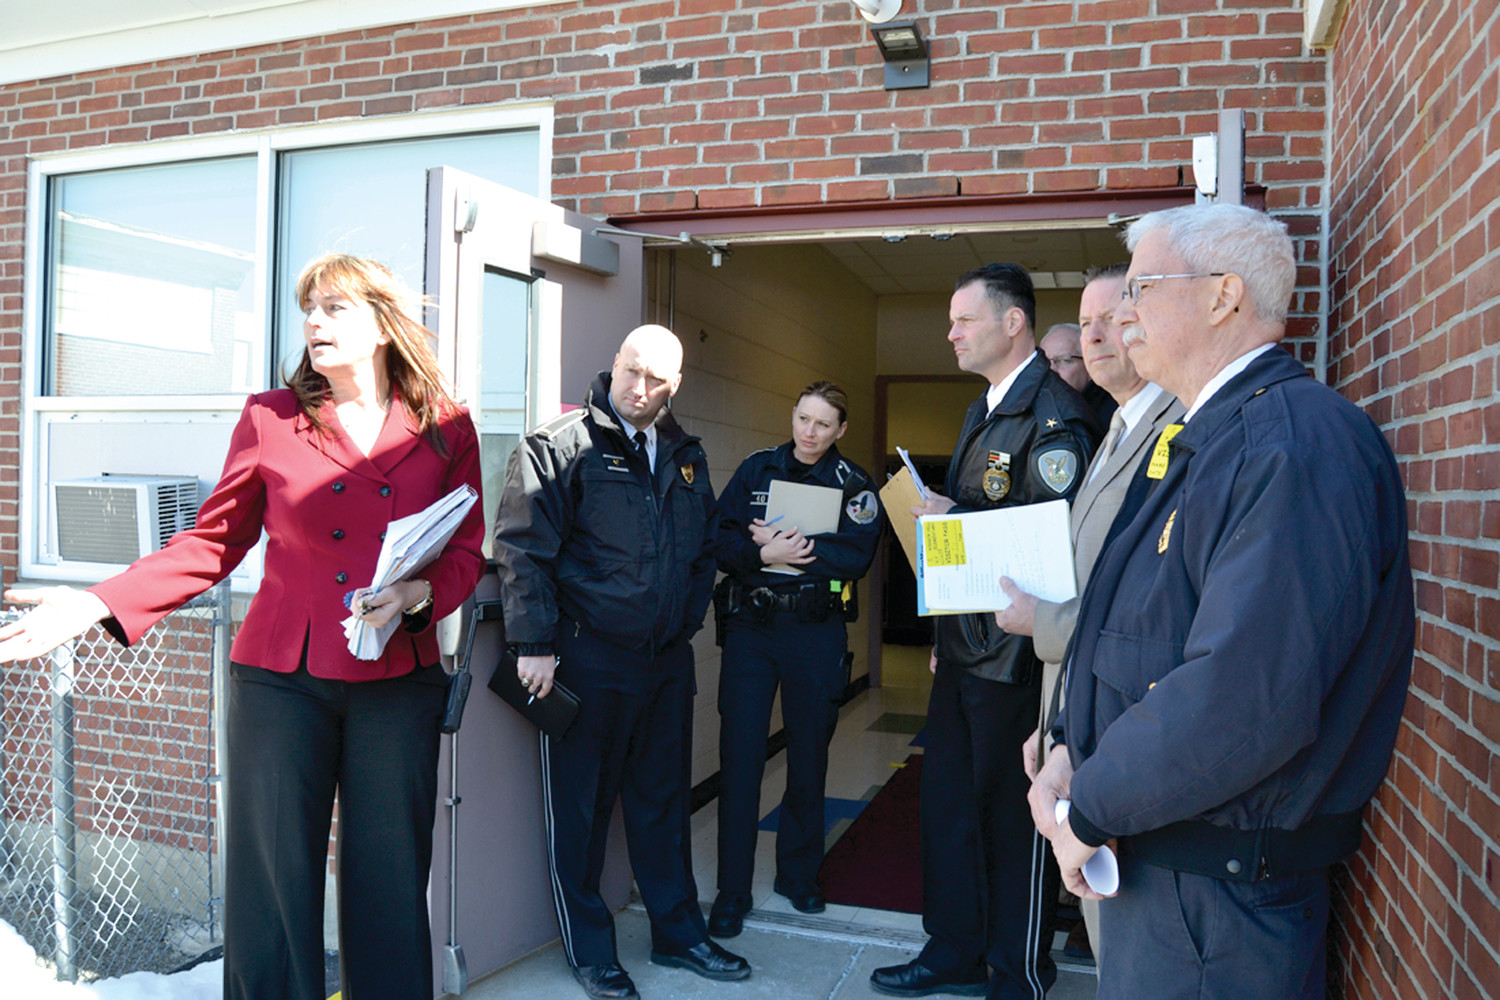 SAFETY FIRST: Winsor Hill Principal Michele Zarcaro (left) provided a threat analysis tour of the school to Police and Fire officials on Monday.